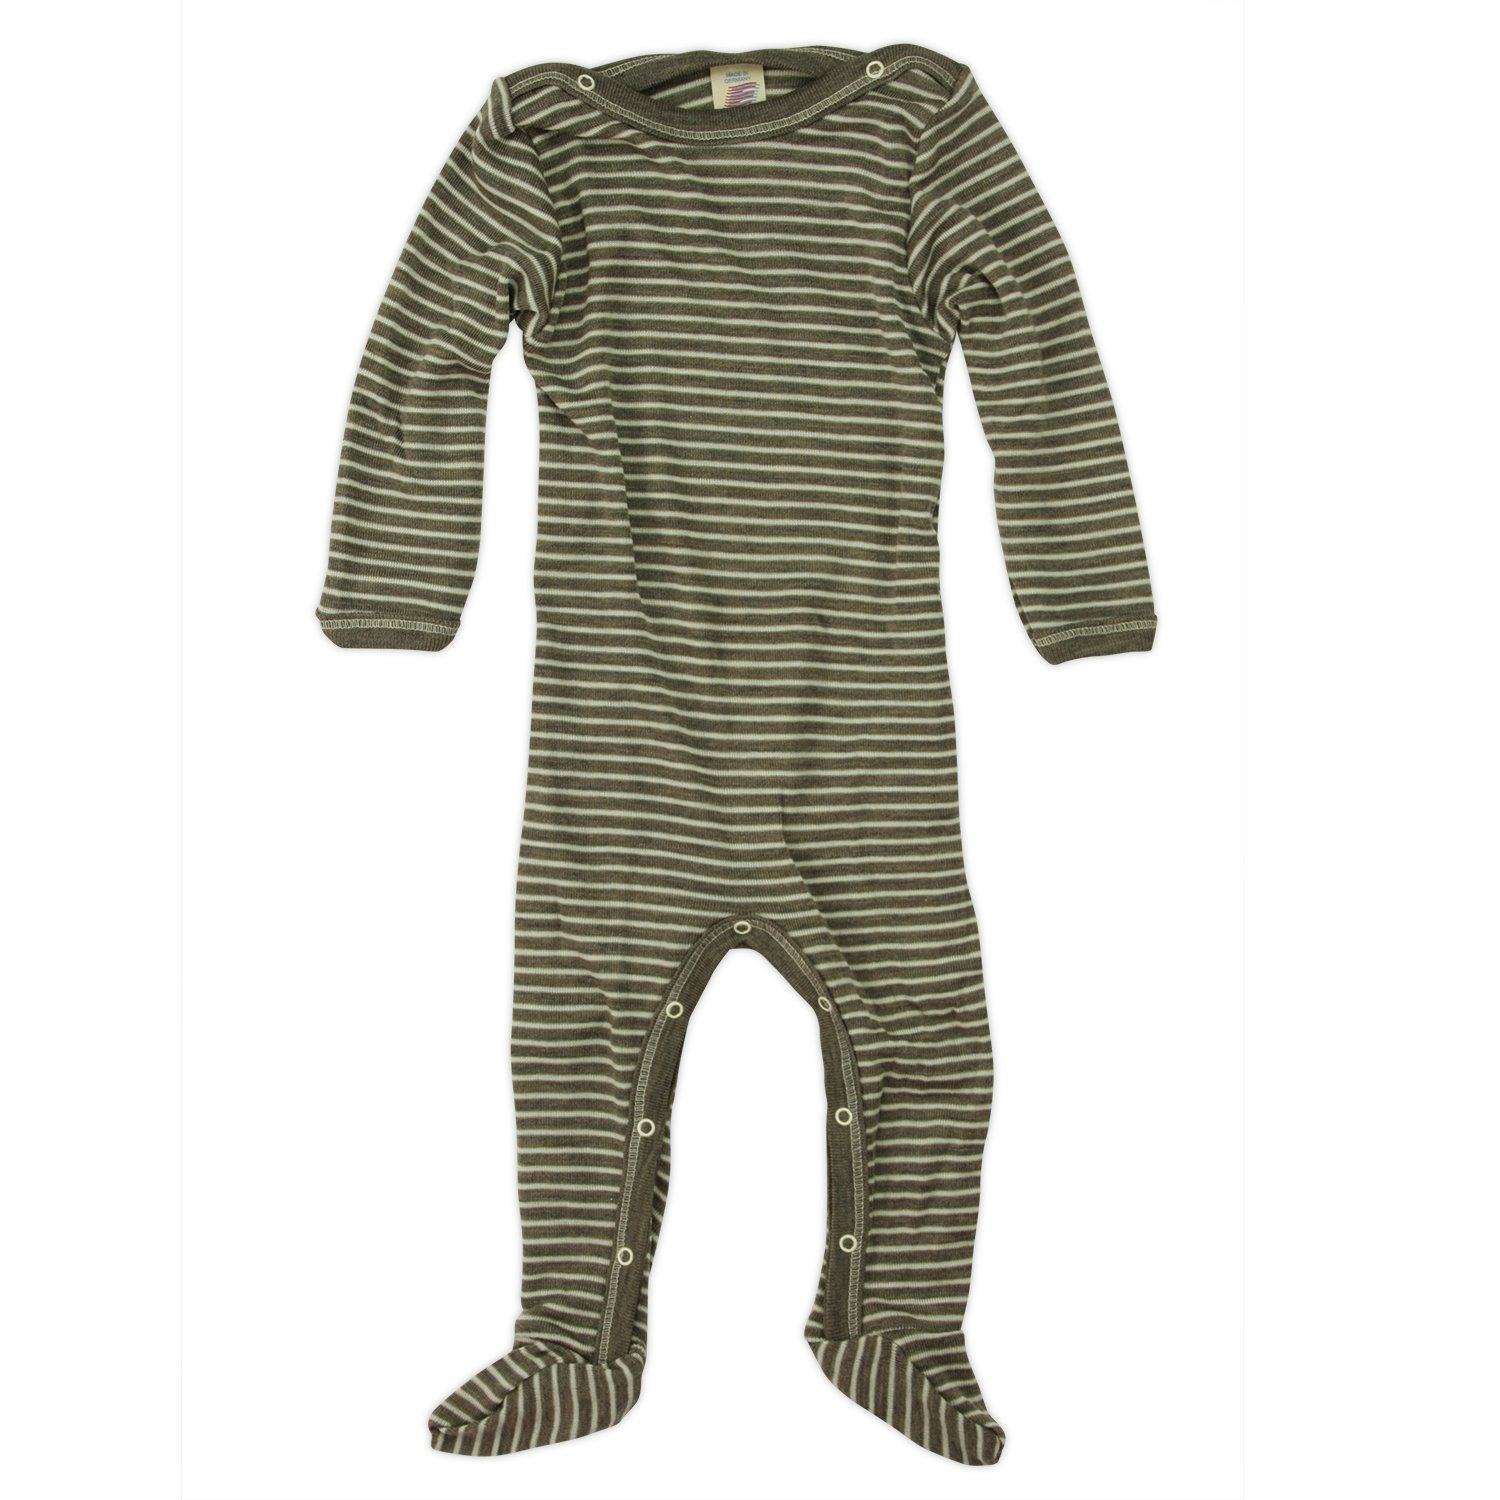 Engel Baby Footie Pajamas With Buttons 709160